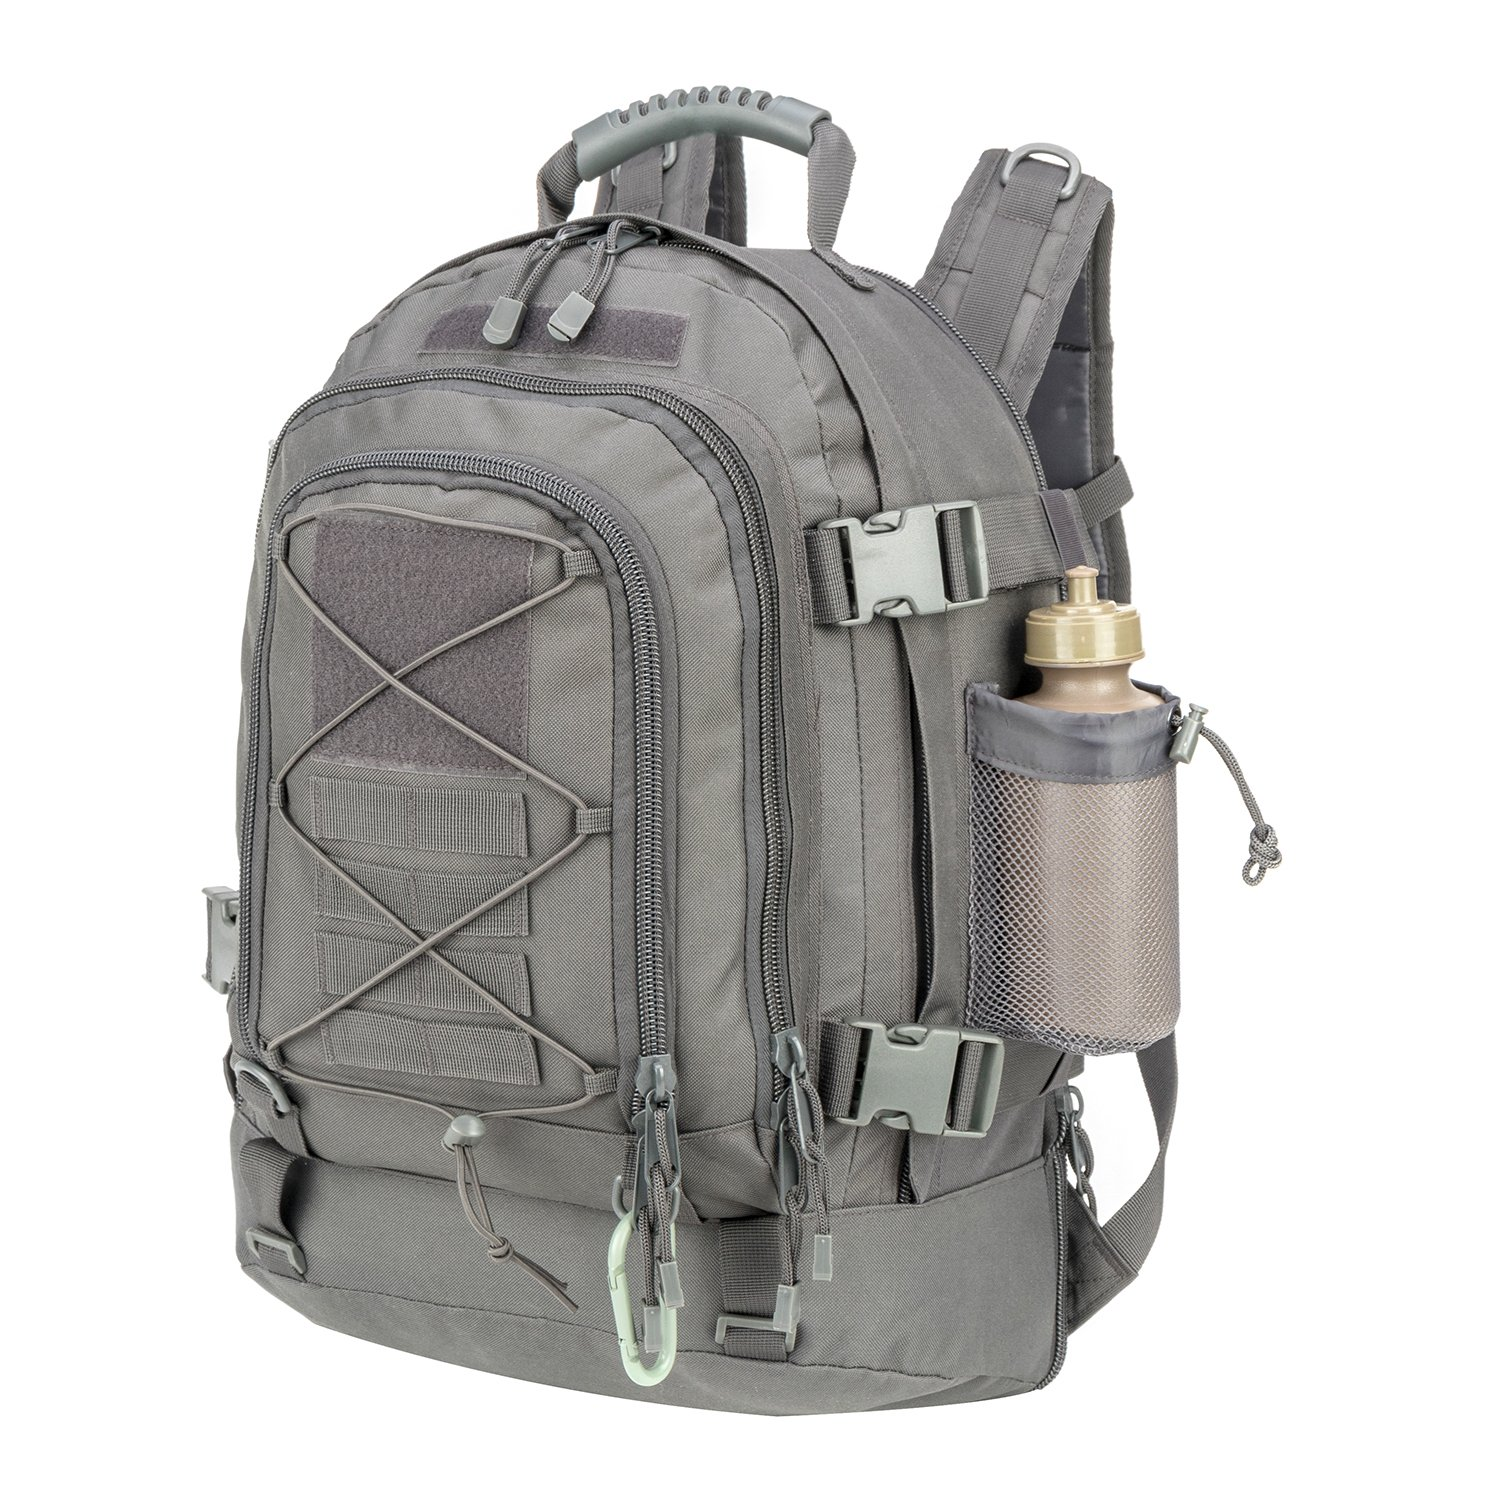 ARMYCAMOUSA 40L Outdoor Expandable Tactical Backpack Military Sport Camping Hiking Trekking Gym Bag (08001A Grey)